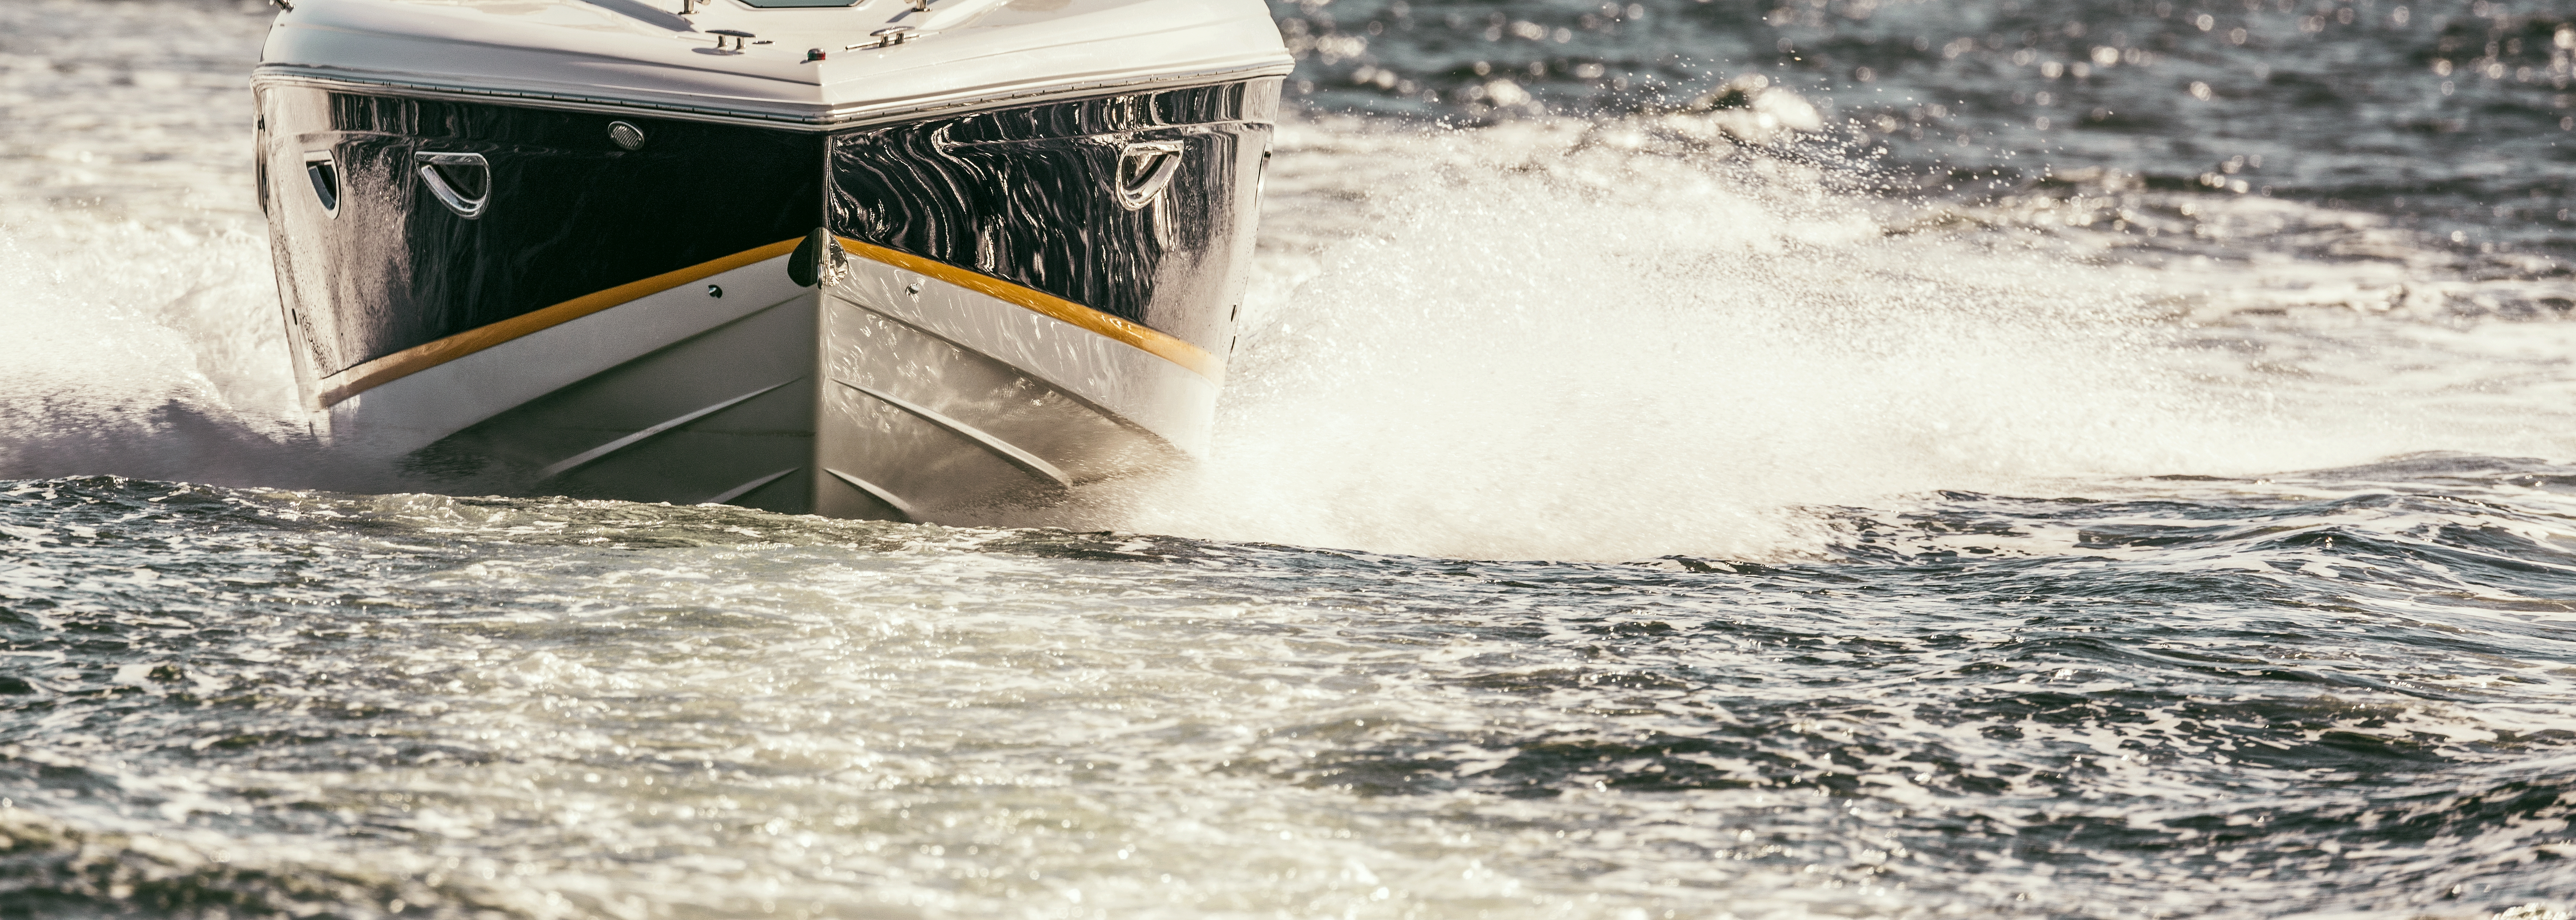 A fast blue and white boat with yellow trim moving at speed across choppy water and leaving a wake.